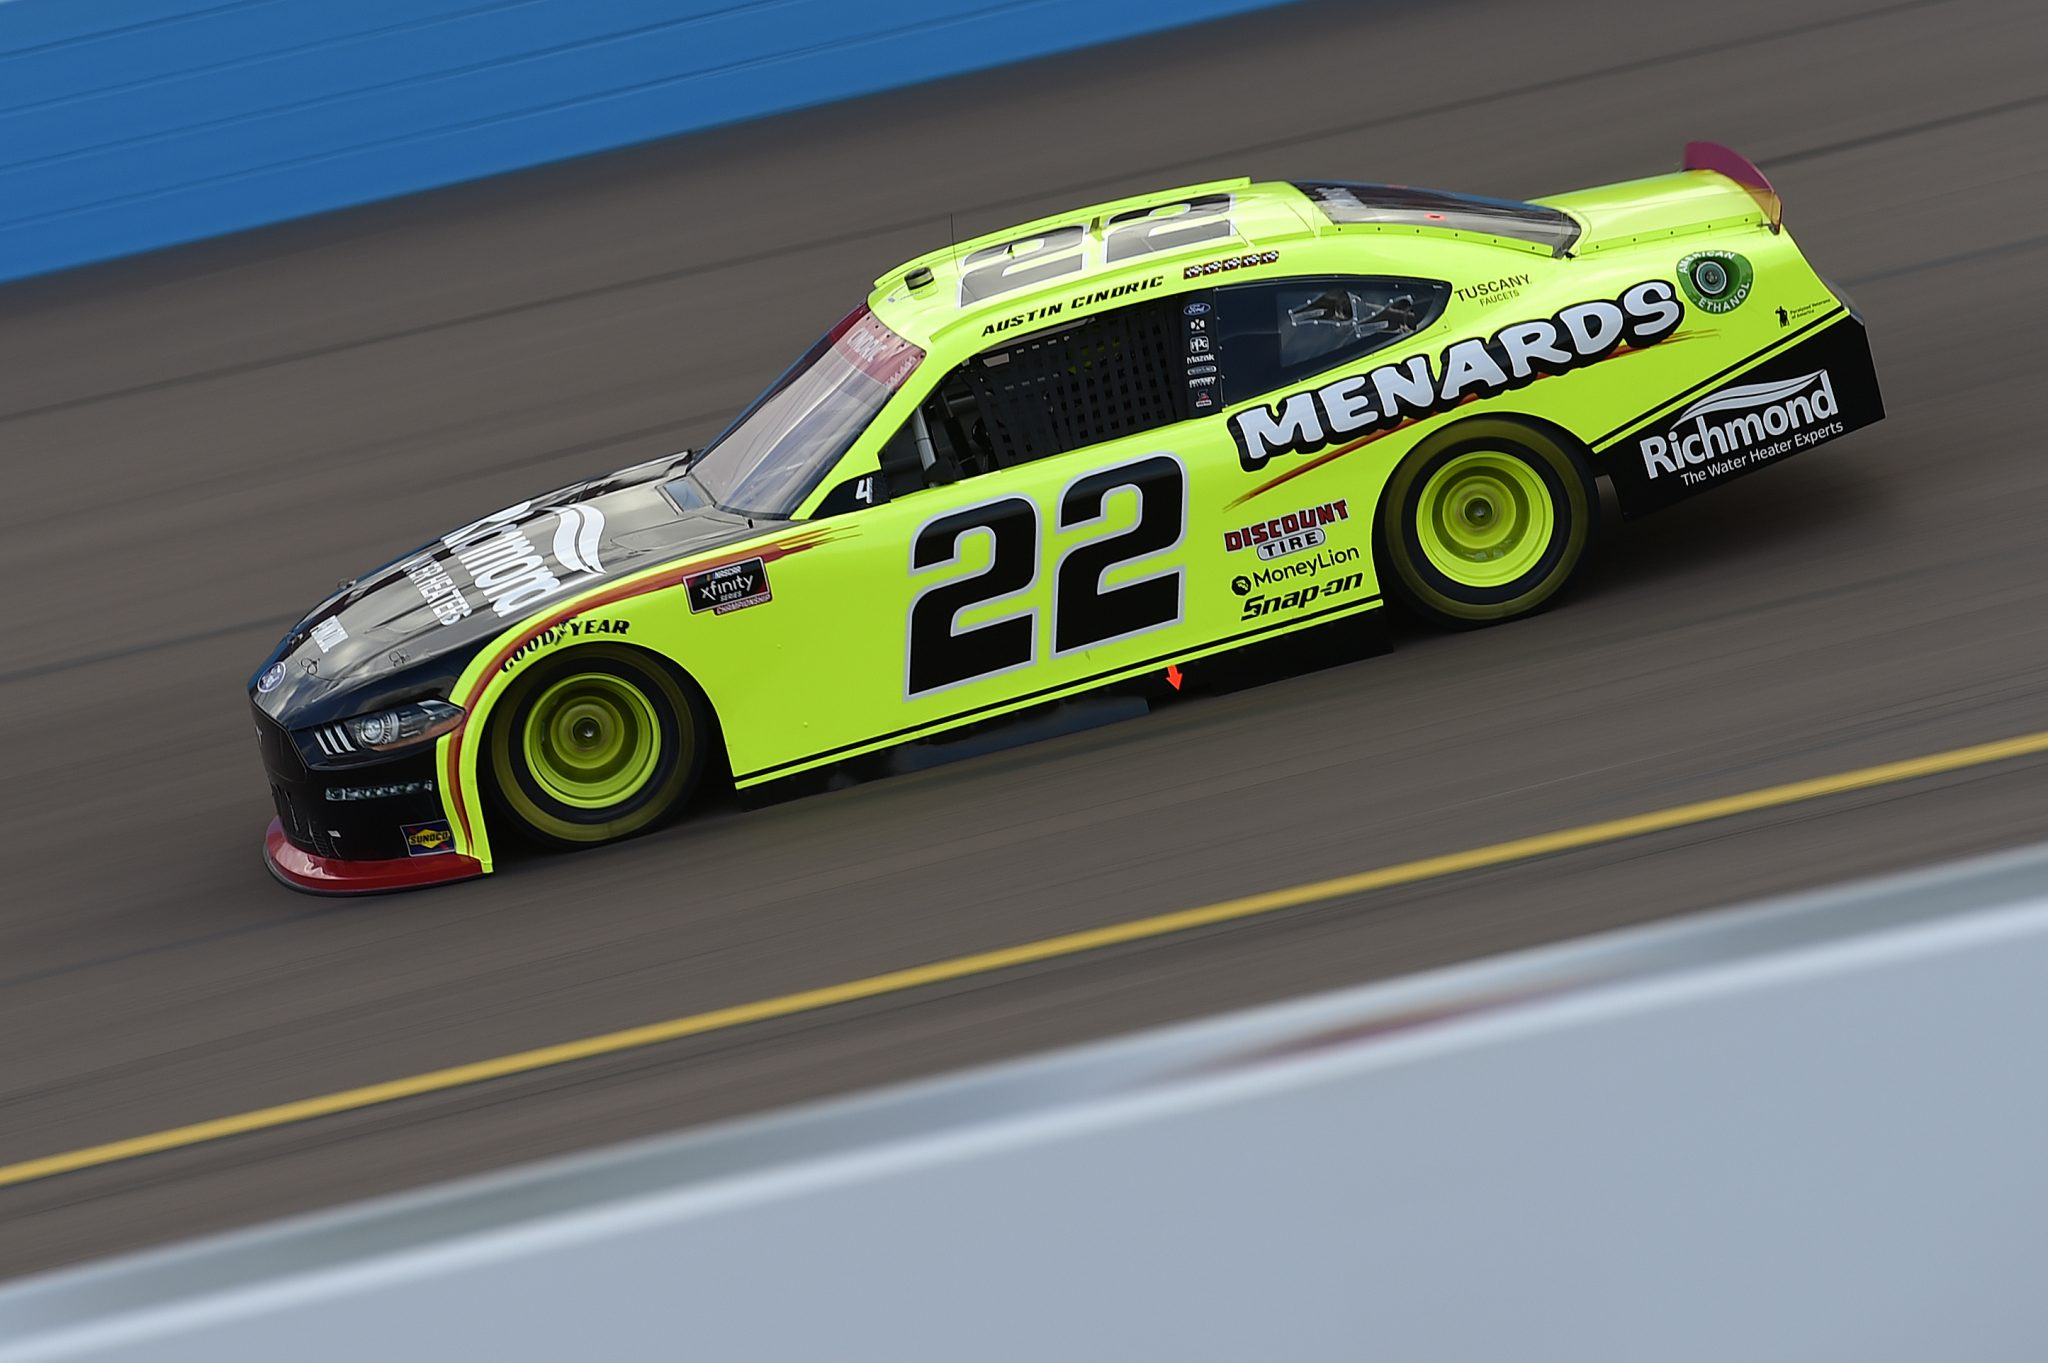 AVONDALE, ARIZONA - NOVEMBER 07: Austin Cindric, driver of the #22 Menards/Richmond Ford, drives during the NASCAR Xfinity Series Desert Diamond Casino West Valley 200 at Phoenix Raceway on November 07, 2020 in Avondale, Arizona. (Photo by Jared C. Tilton/Getty Images) | Getty Images